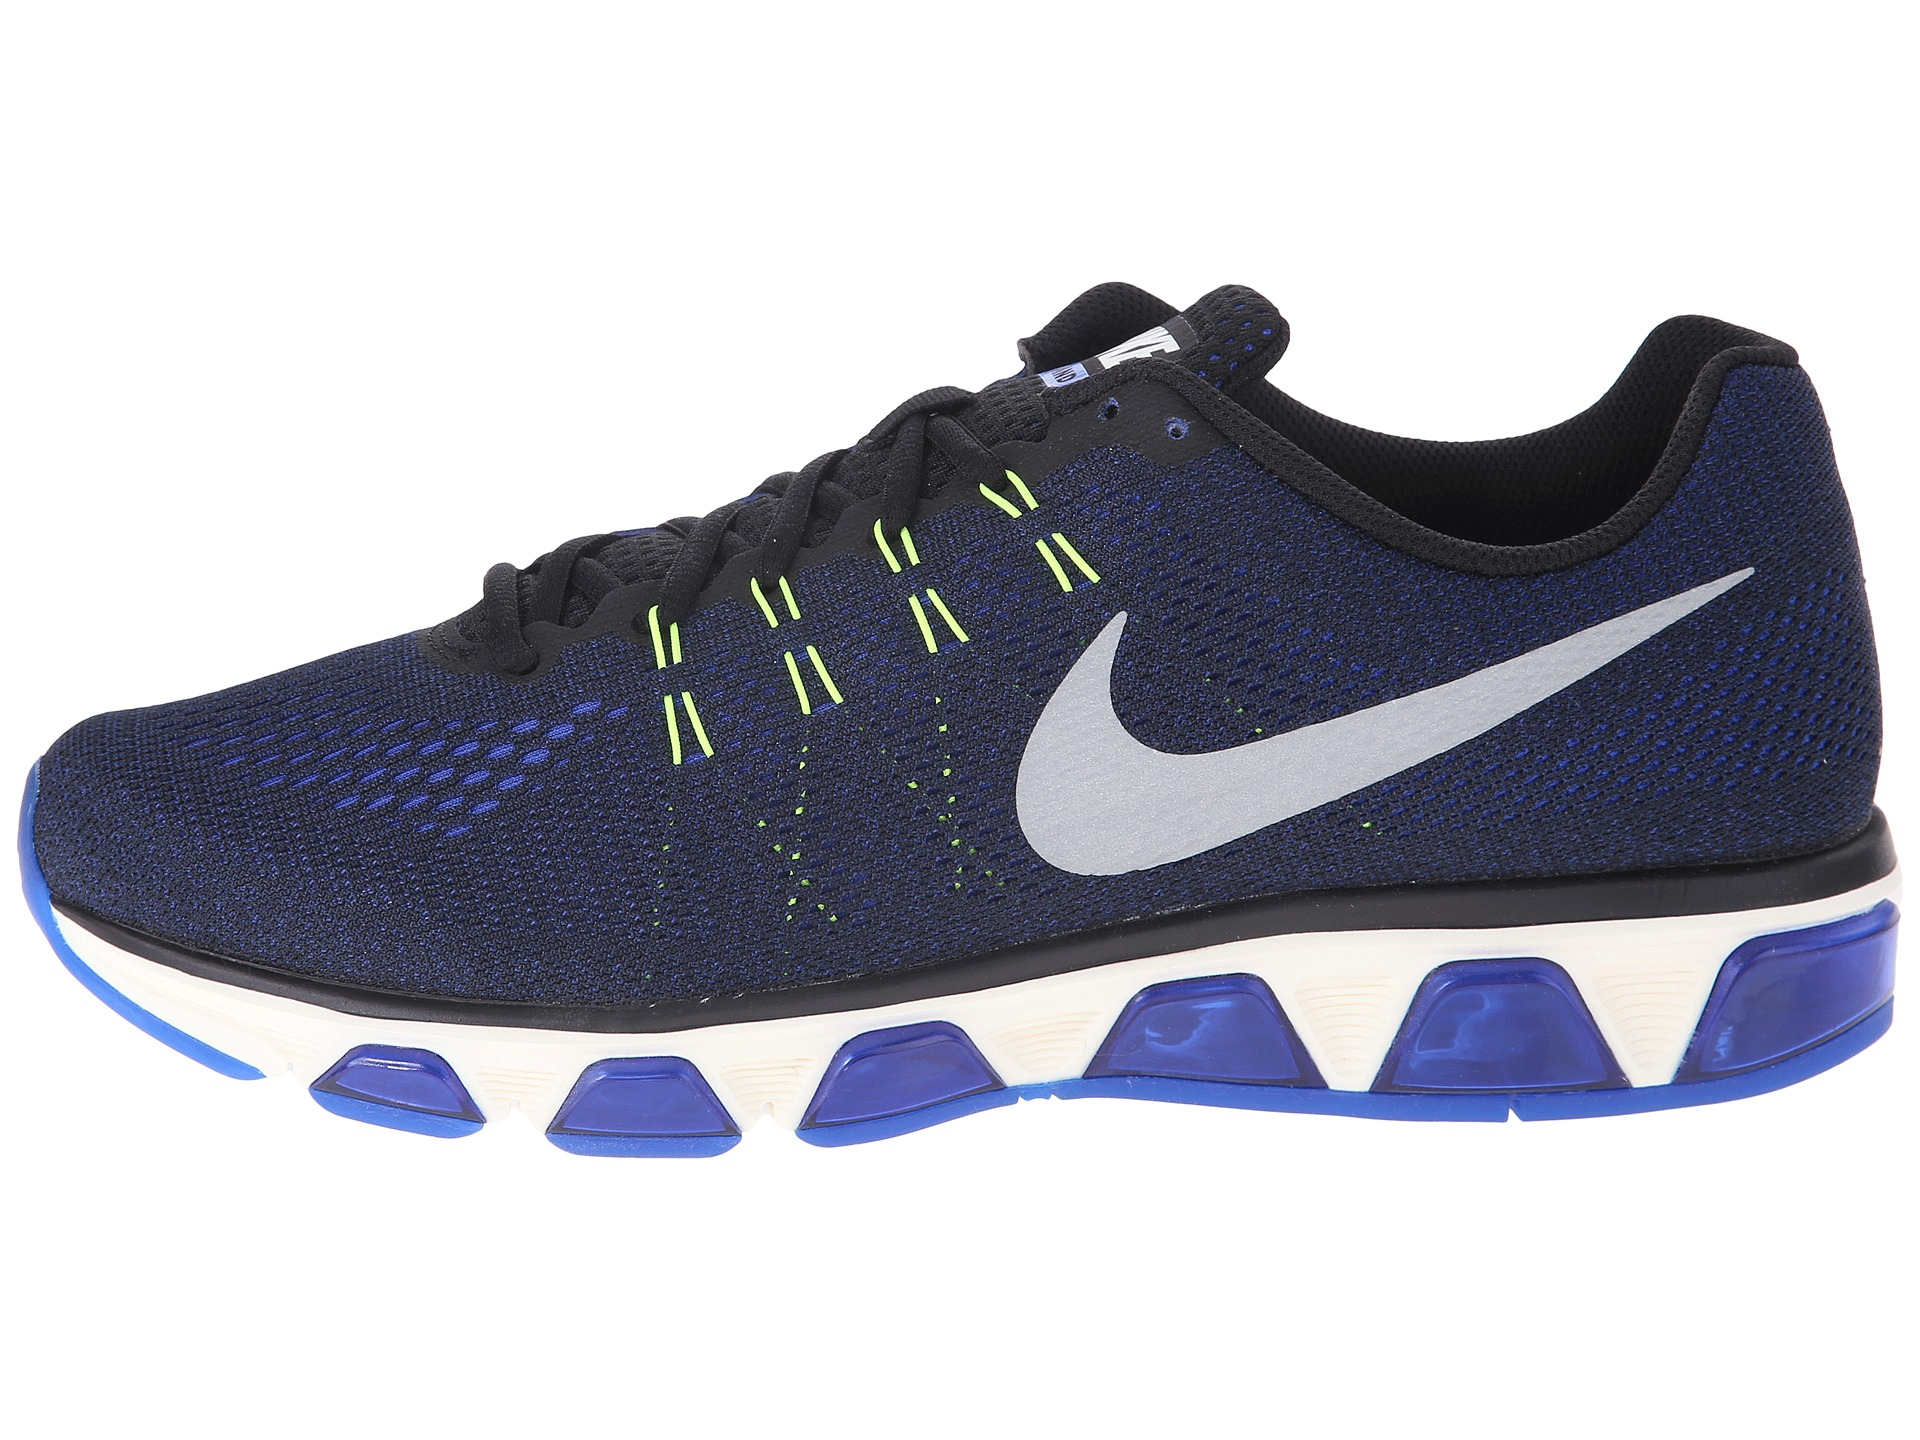 uk availability 5efd2 a9277 nike air max tailwind 8 blue